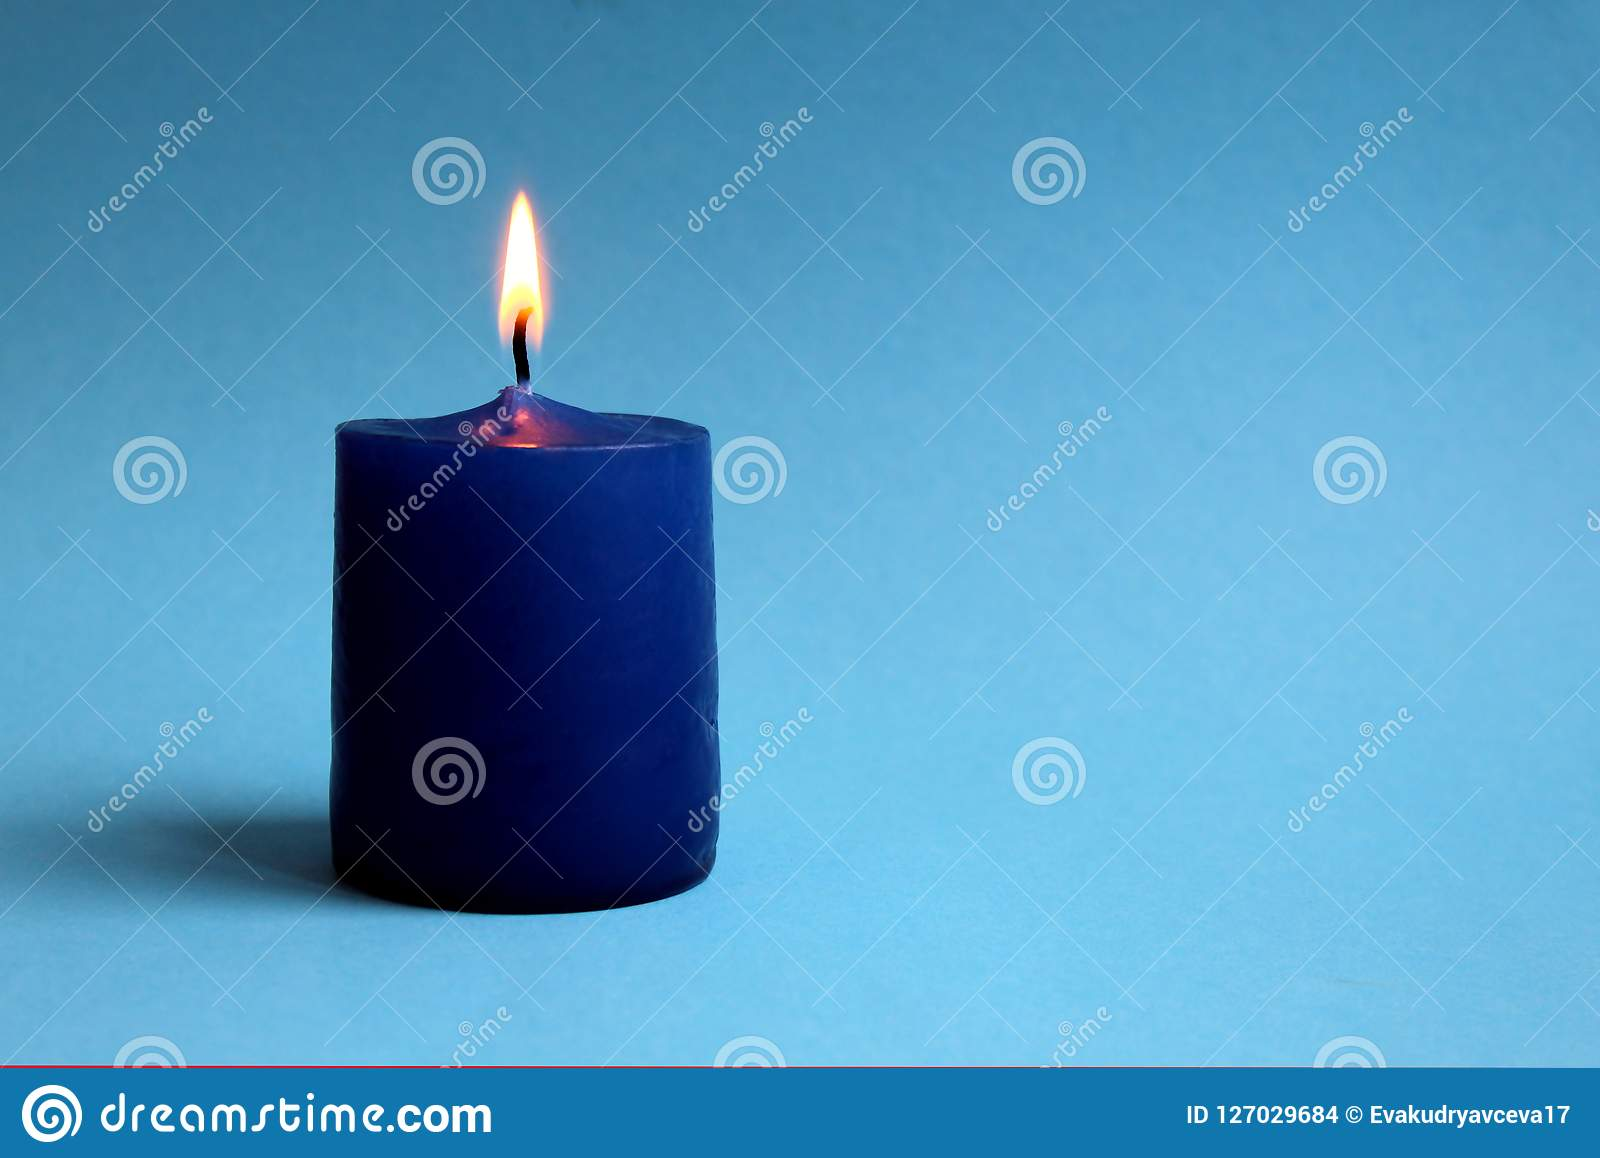 Lonely candle lit on a blue background